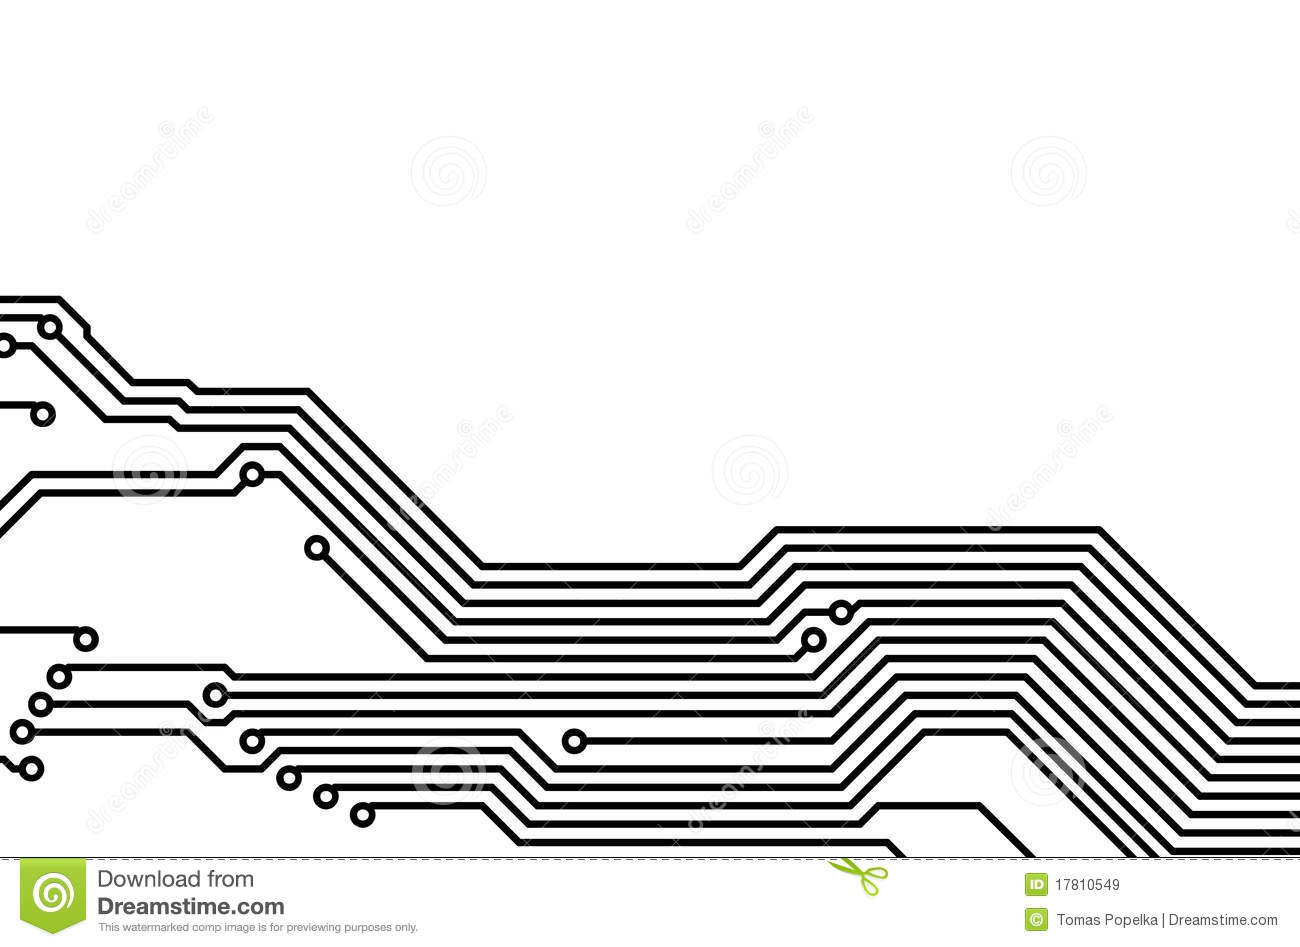 Printed Circuit Board Clicking Electrical Work Wiring Diagram Blank Green Pcb Stock Photo Image 63563161 6 Royalty Free Images 17810549 Intel